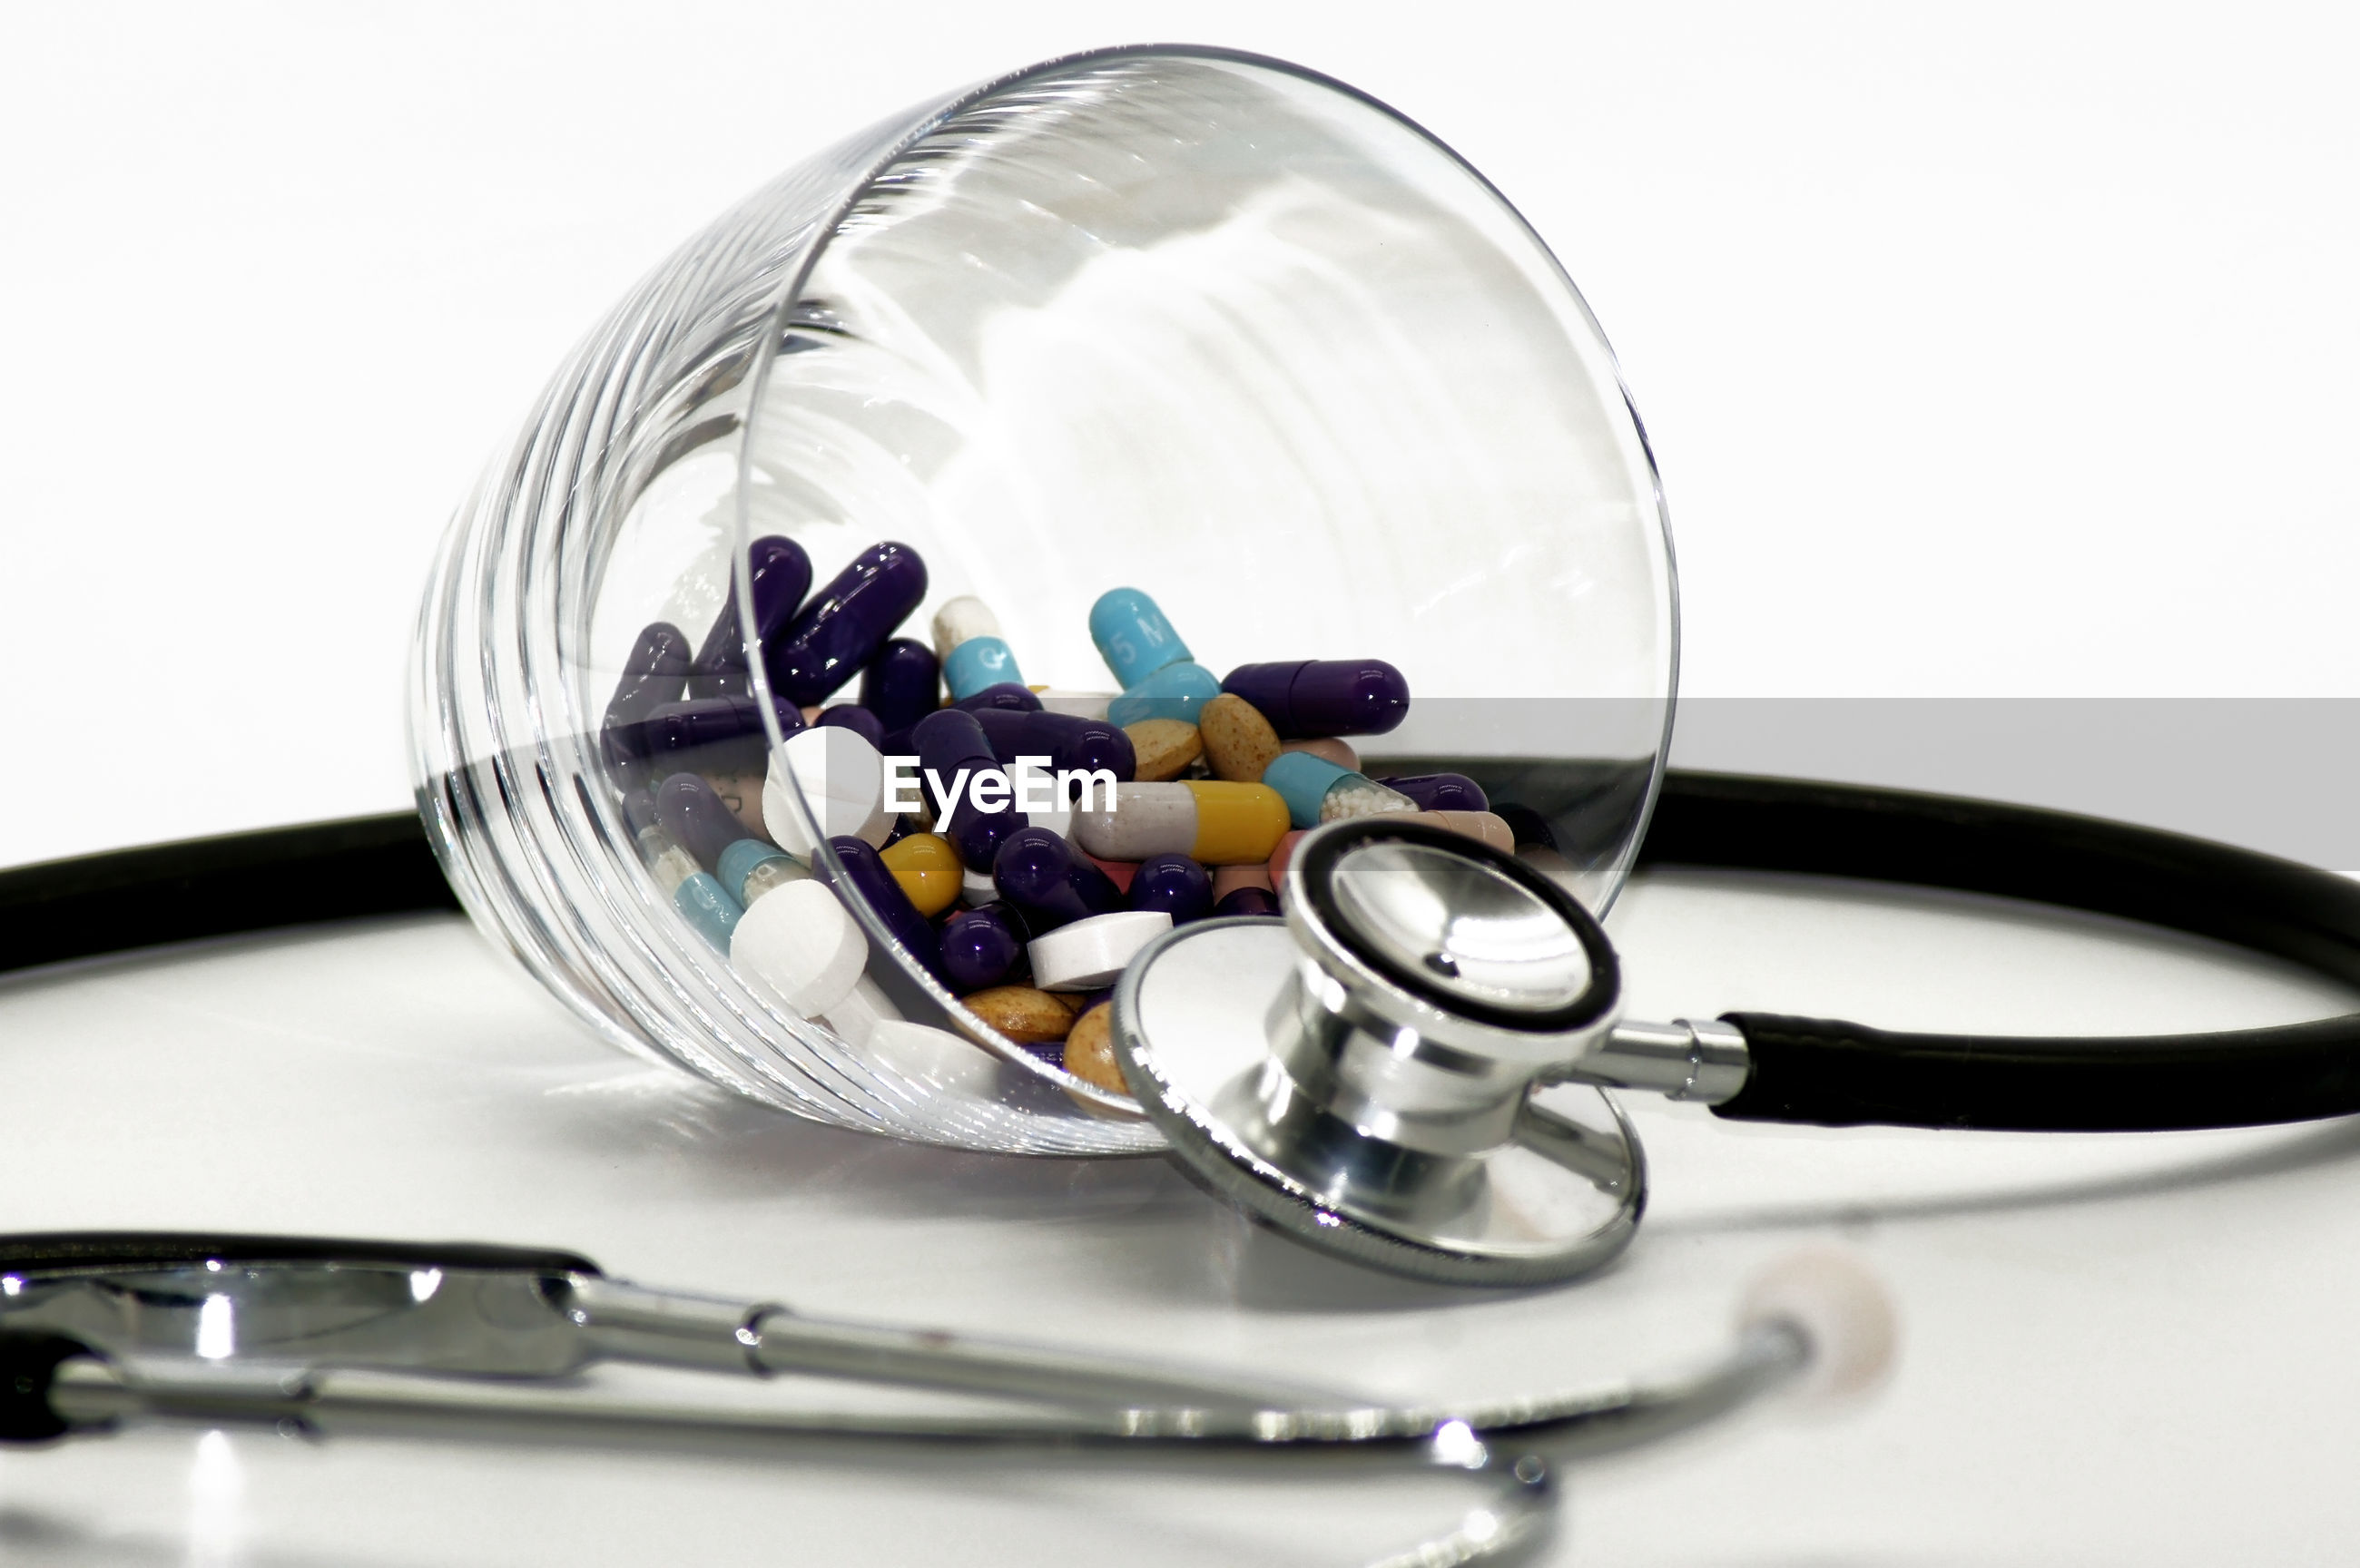 Close-up of pills and stethoscope against white background